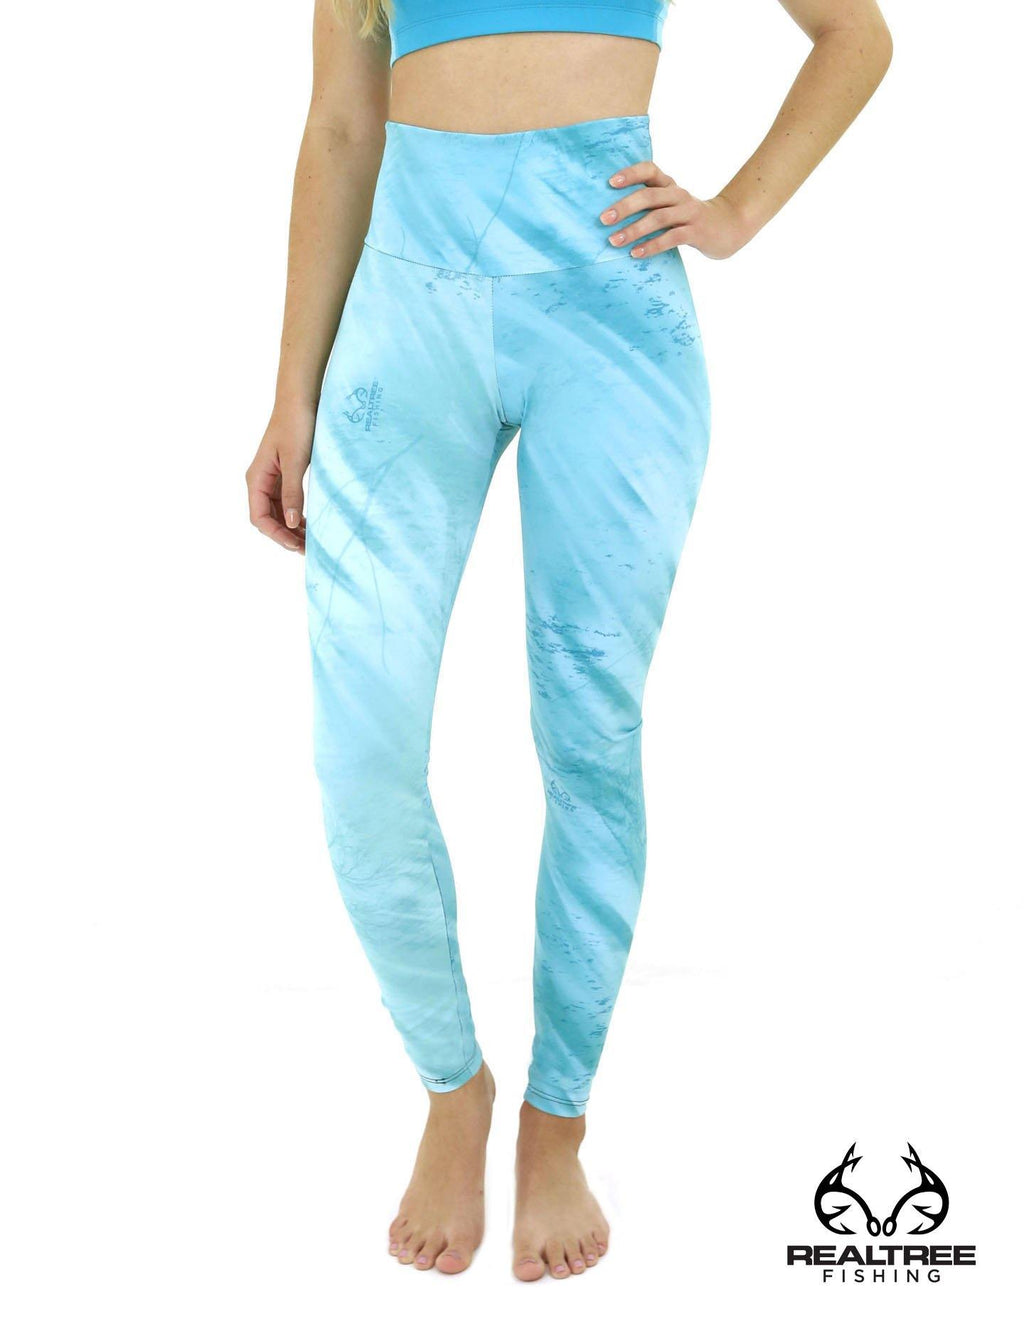 Apsara Leggings High Waist Full Length, Realtree Fishing Light Teal